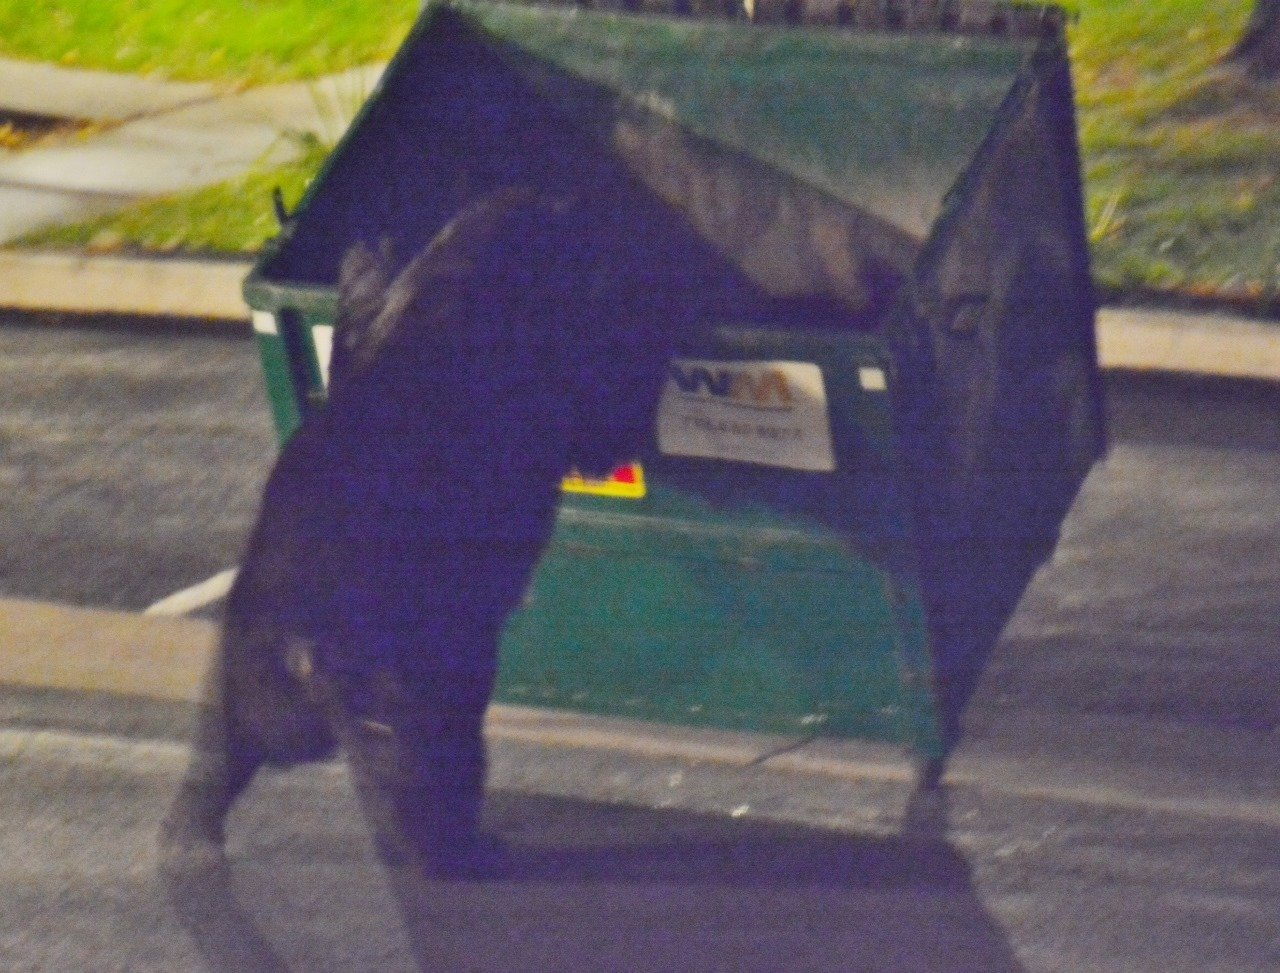 Bear spotted in dumpster in Colorado Springs overnight Thursday.